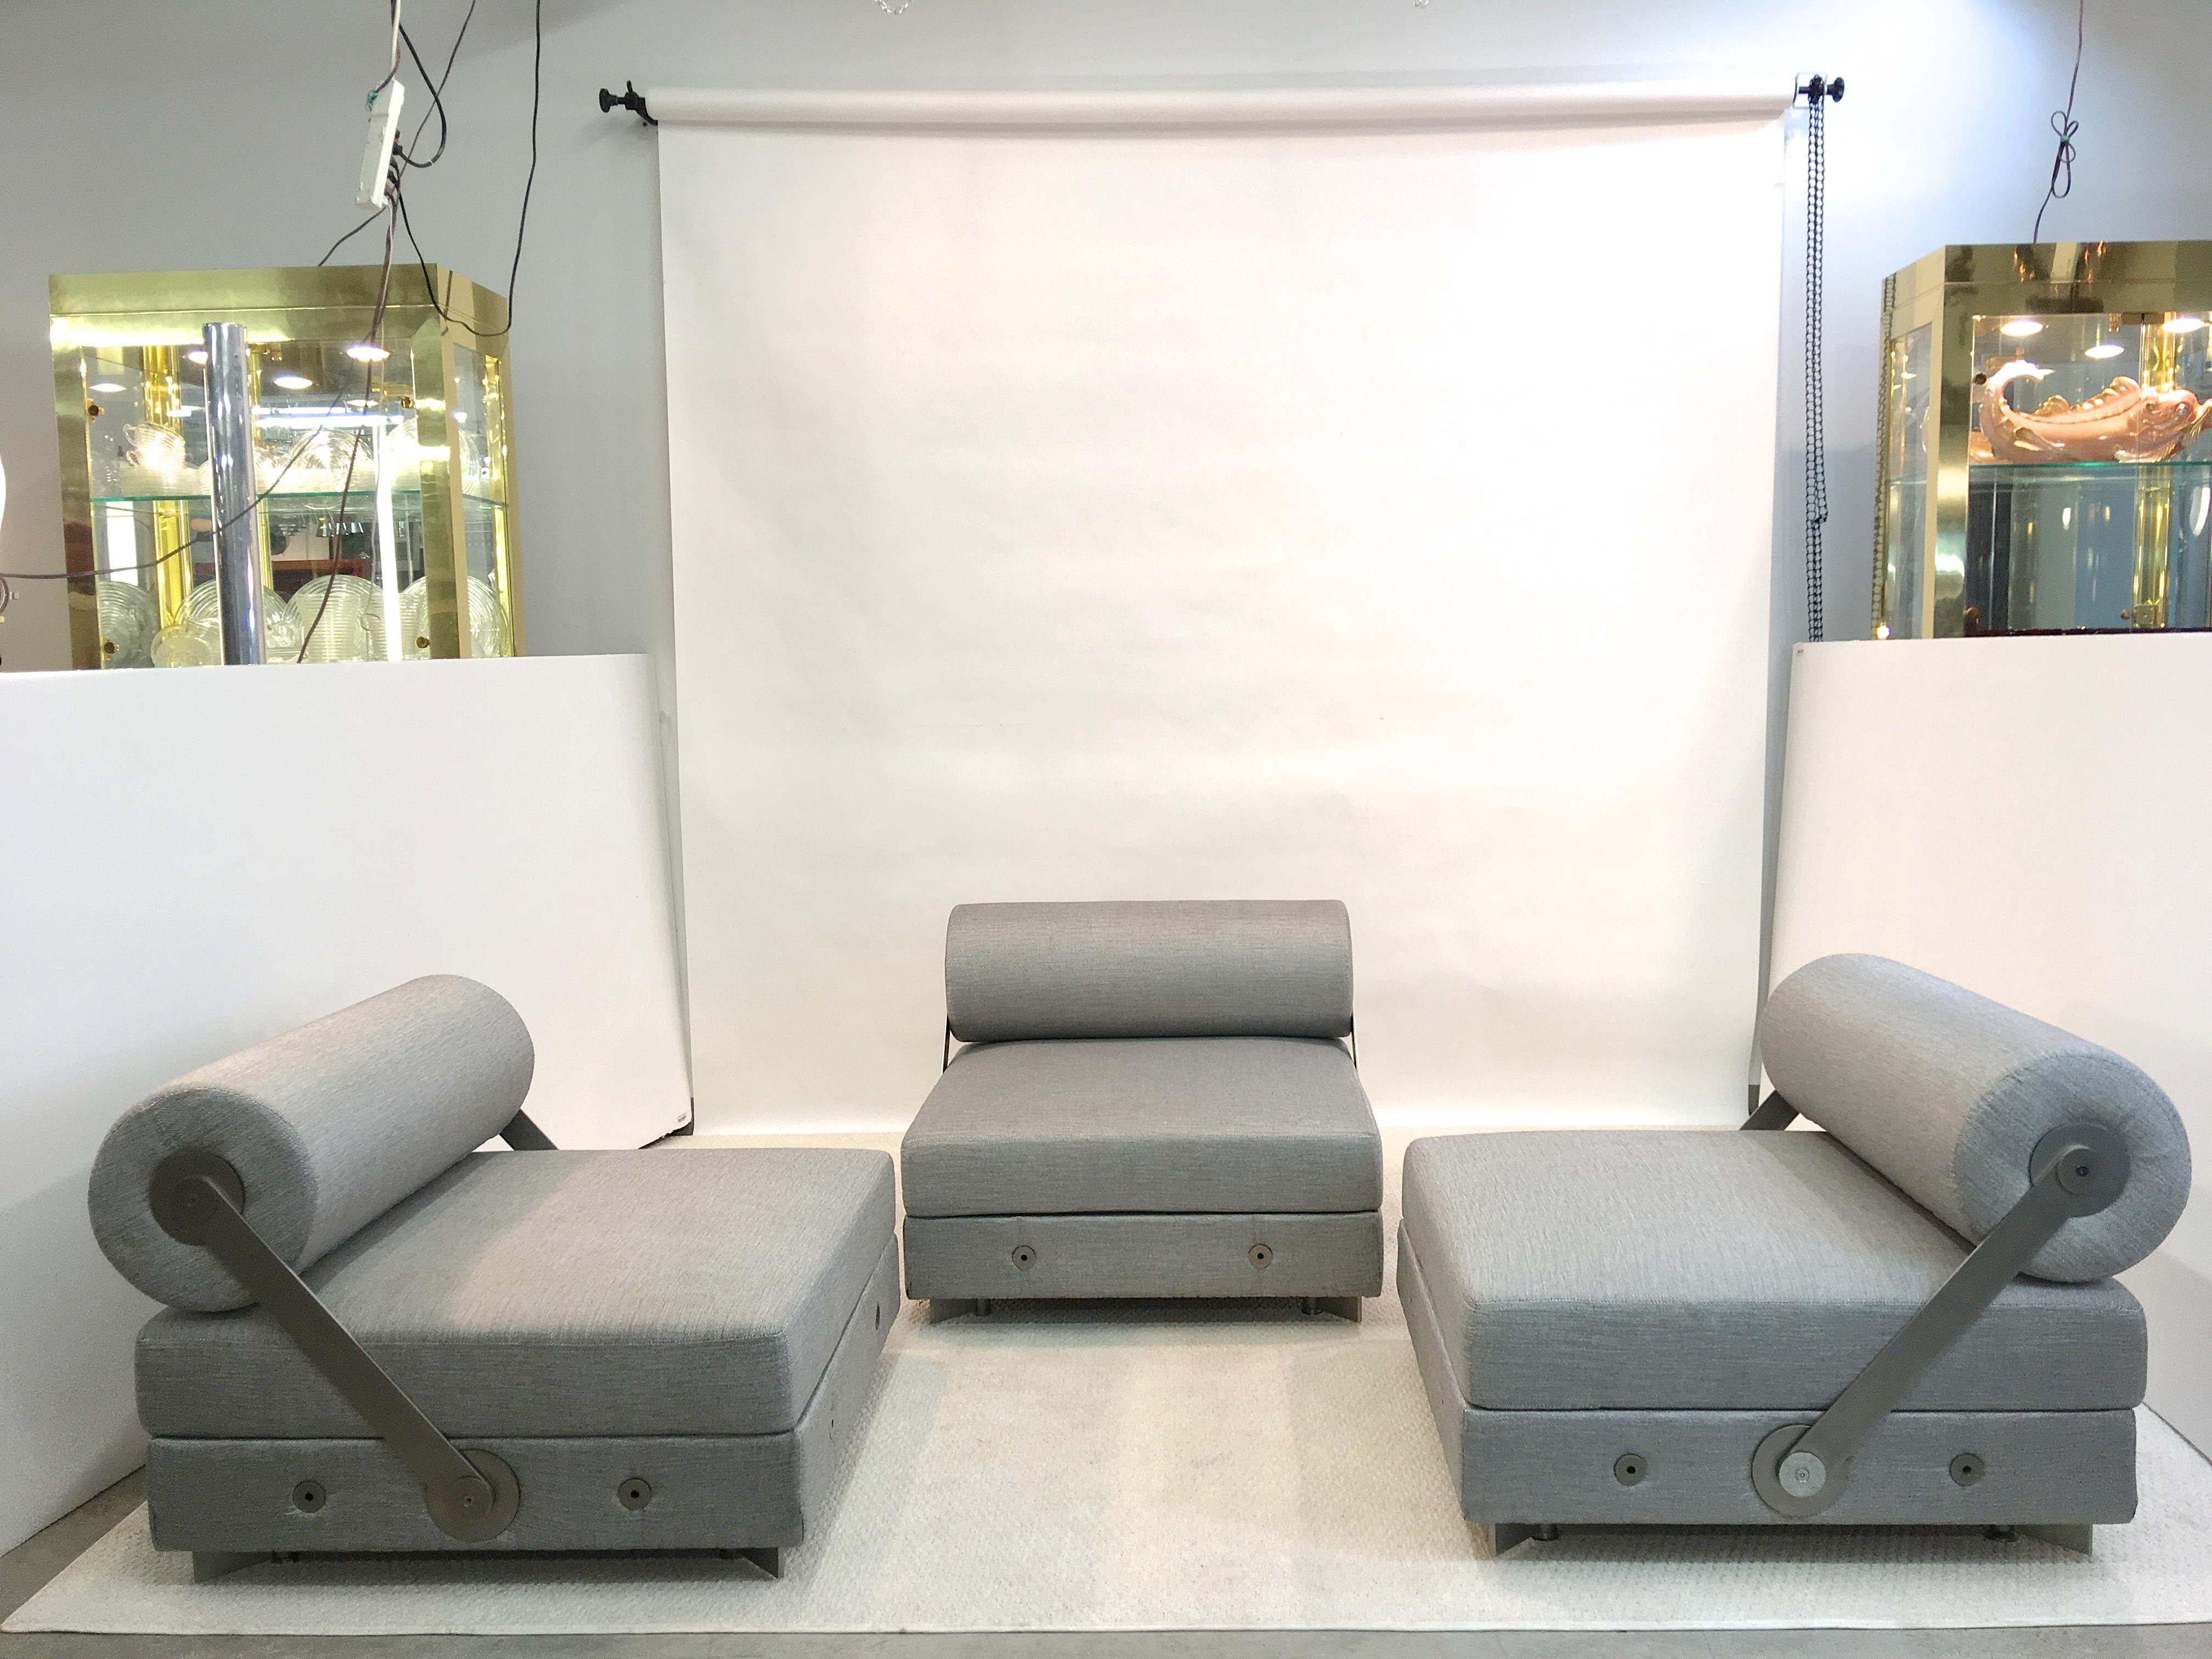 "Most Recent Todo Modo"" Modular Seating With Reversible Backrests For Sale At 1Stdibs For London Optical Reversible Sofa Chaise Sectionals (View 15 of 20)"